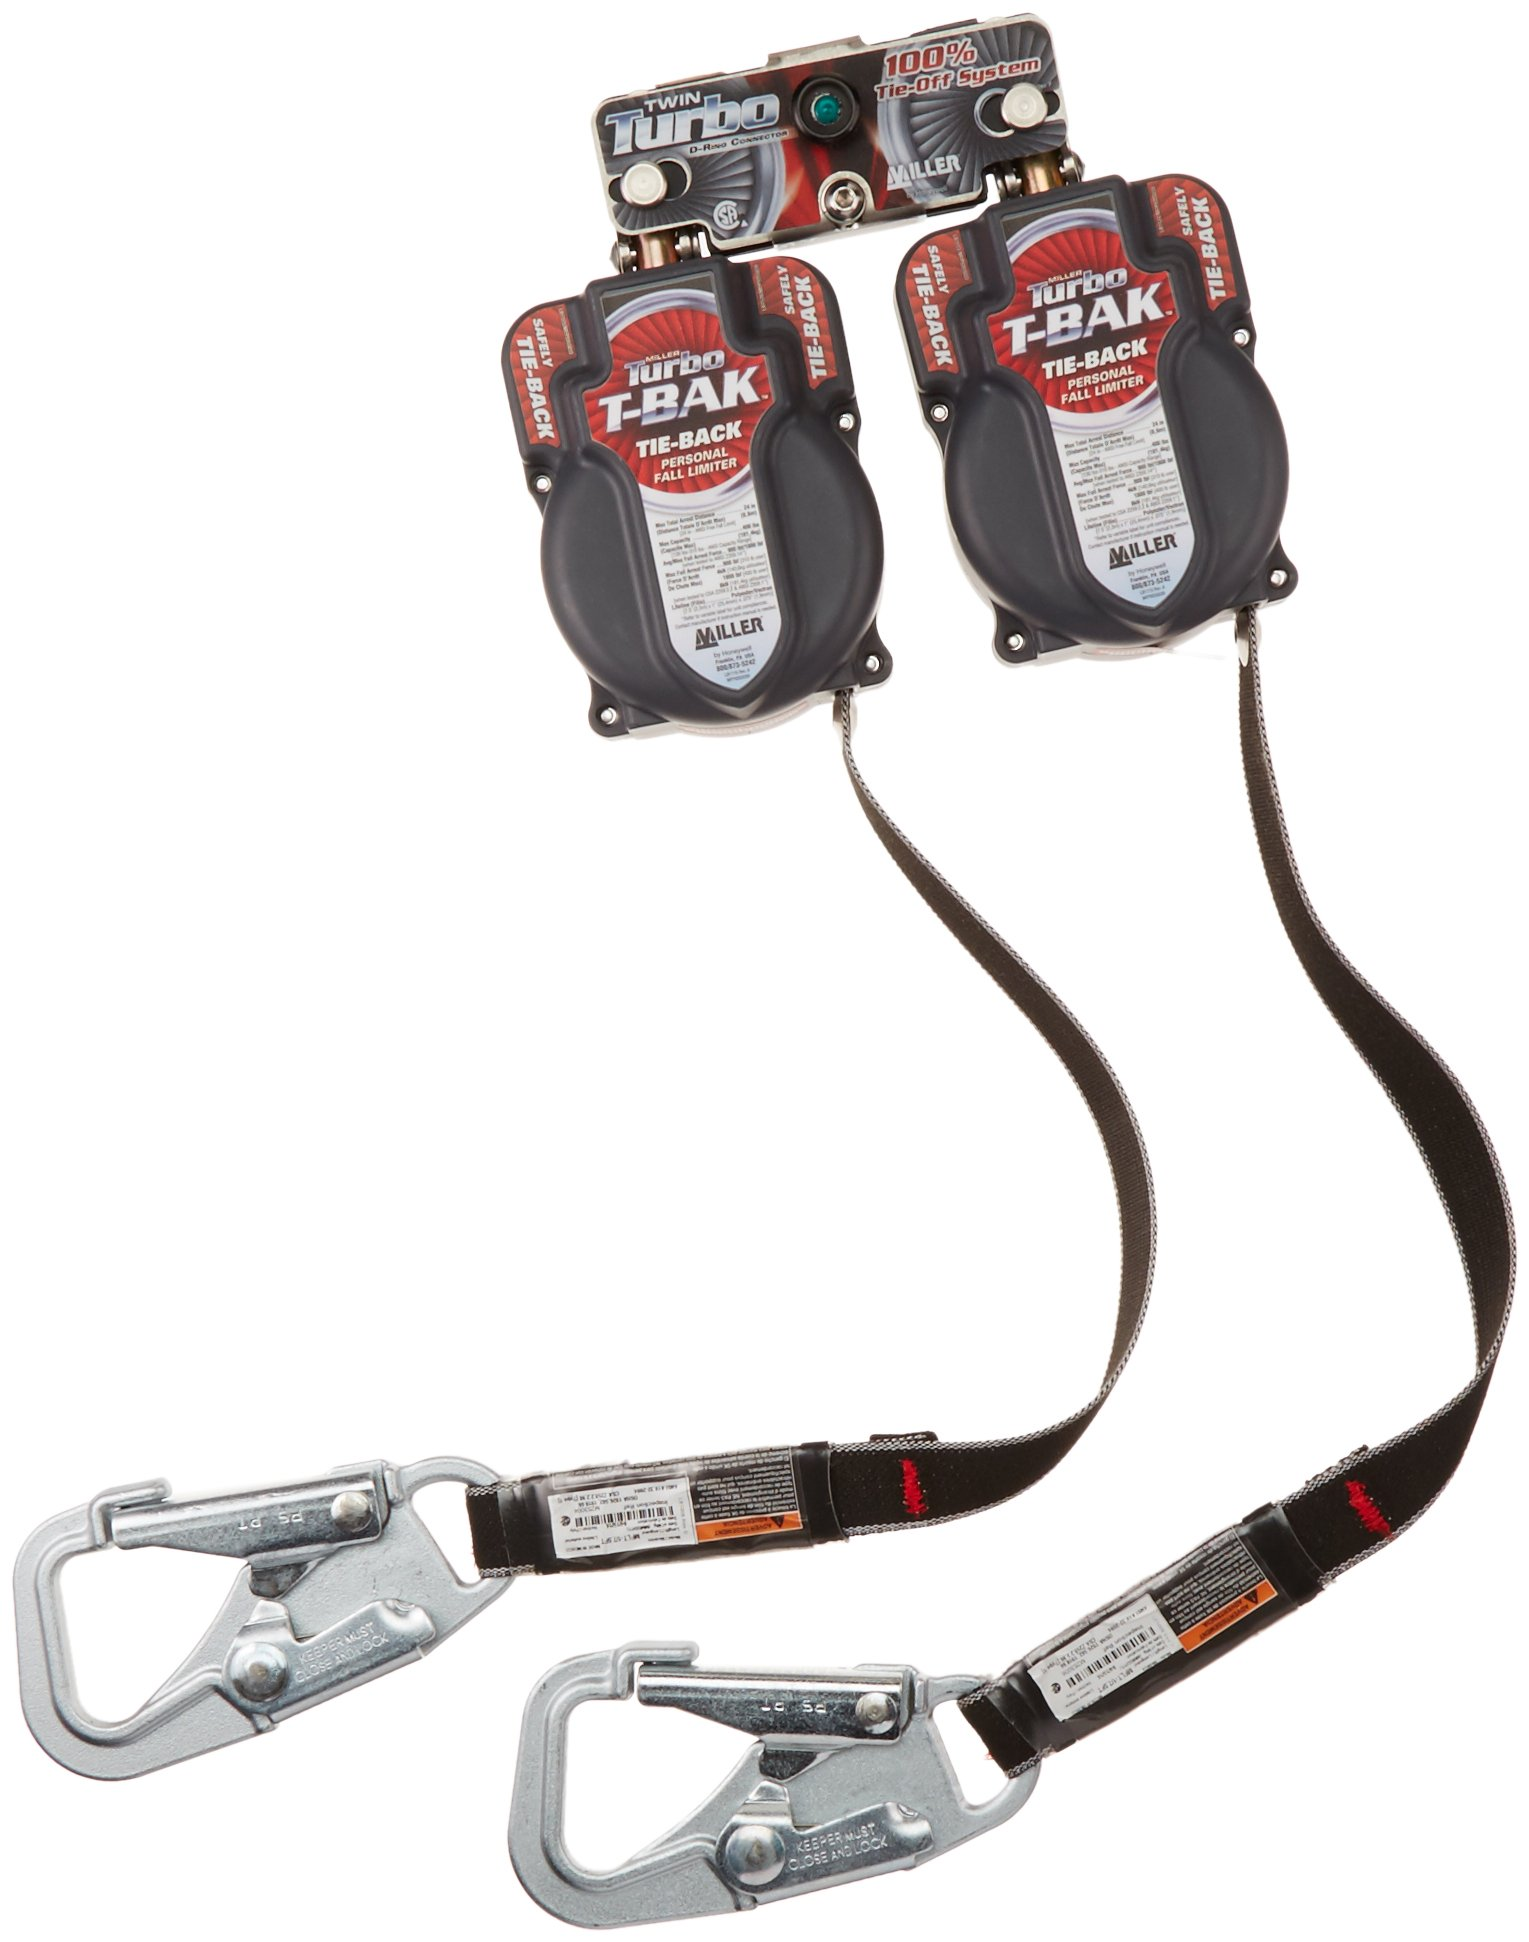 Miller by Honeywell MFLTB-1/7.5FT TurboLite T-BAK Personal Fall Limiter with Twin Turbo D-Ring Connector